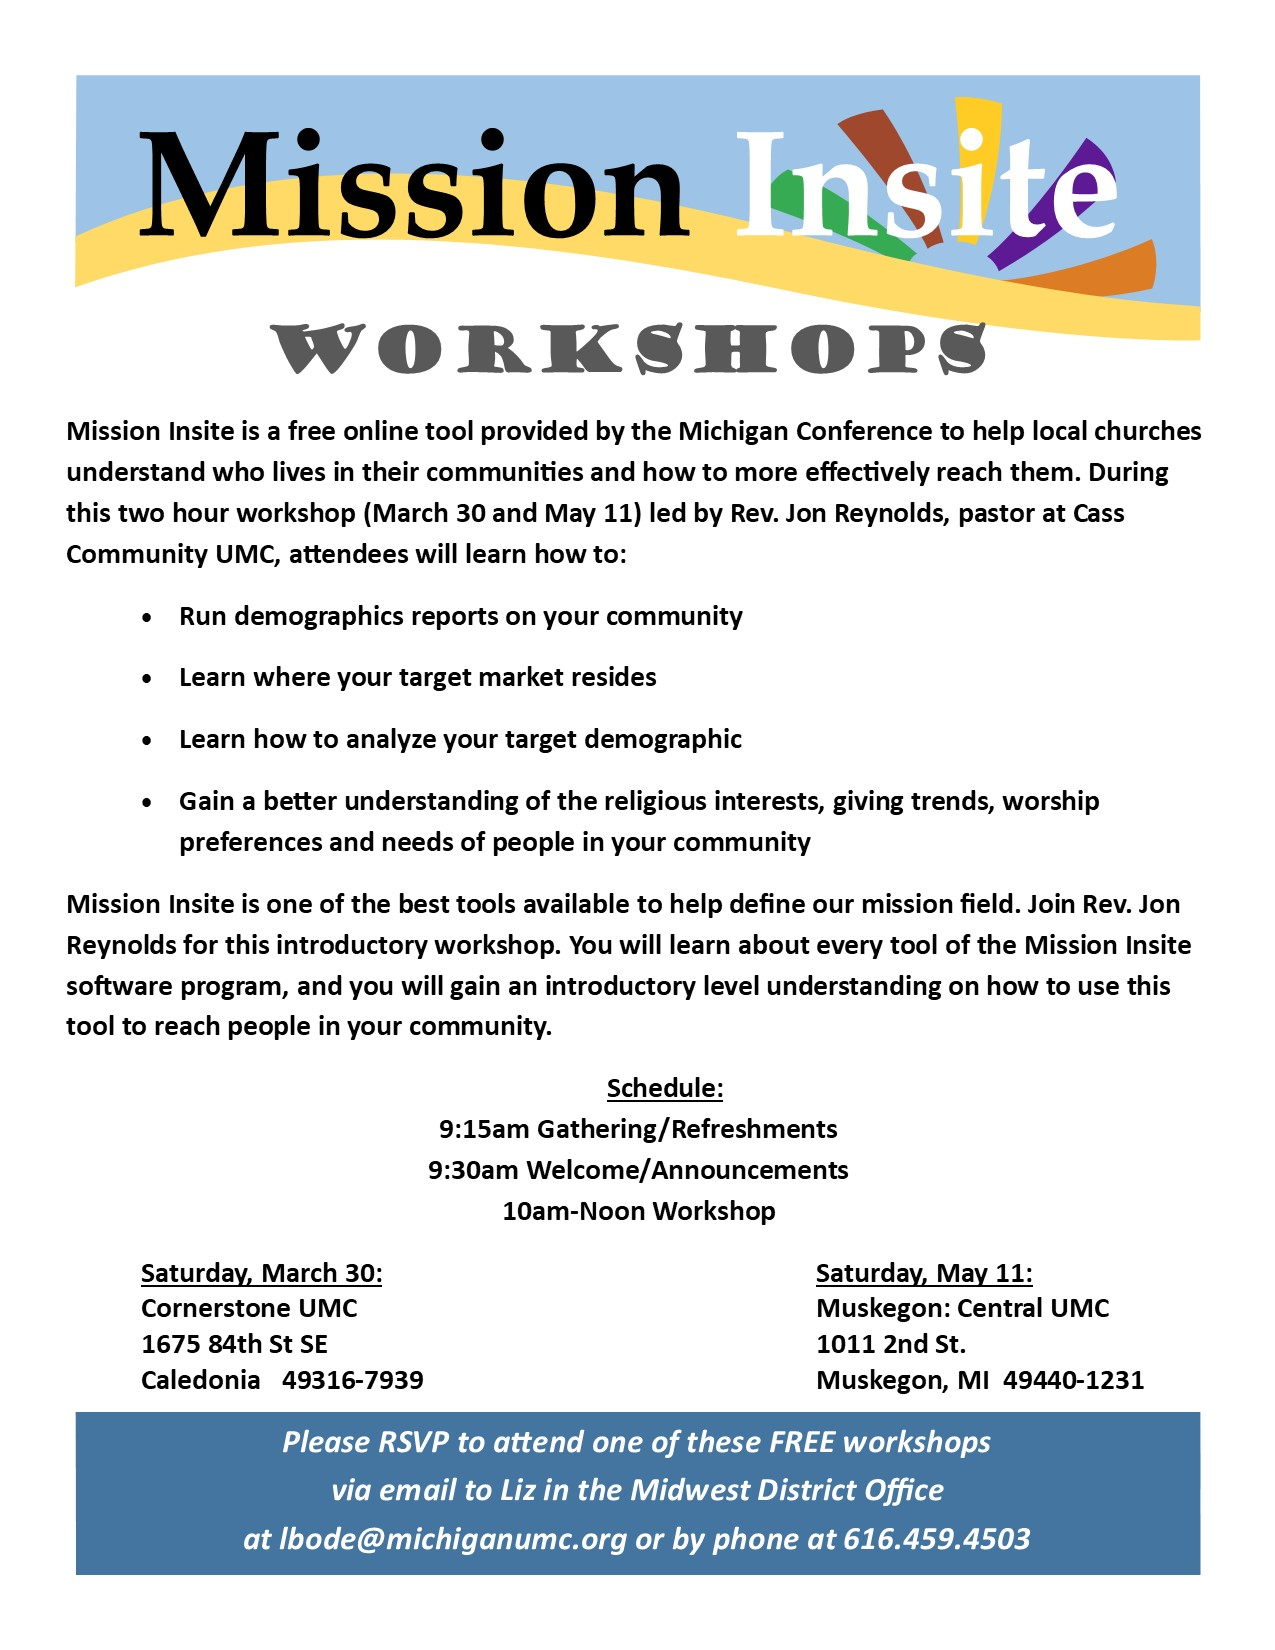 MissionInsite, Workshop, Midwest District